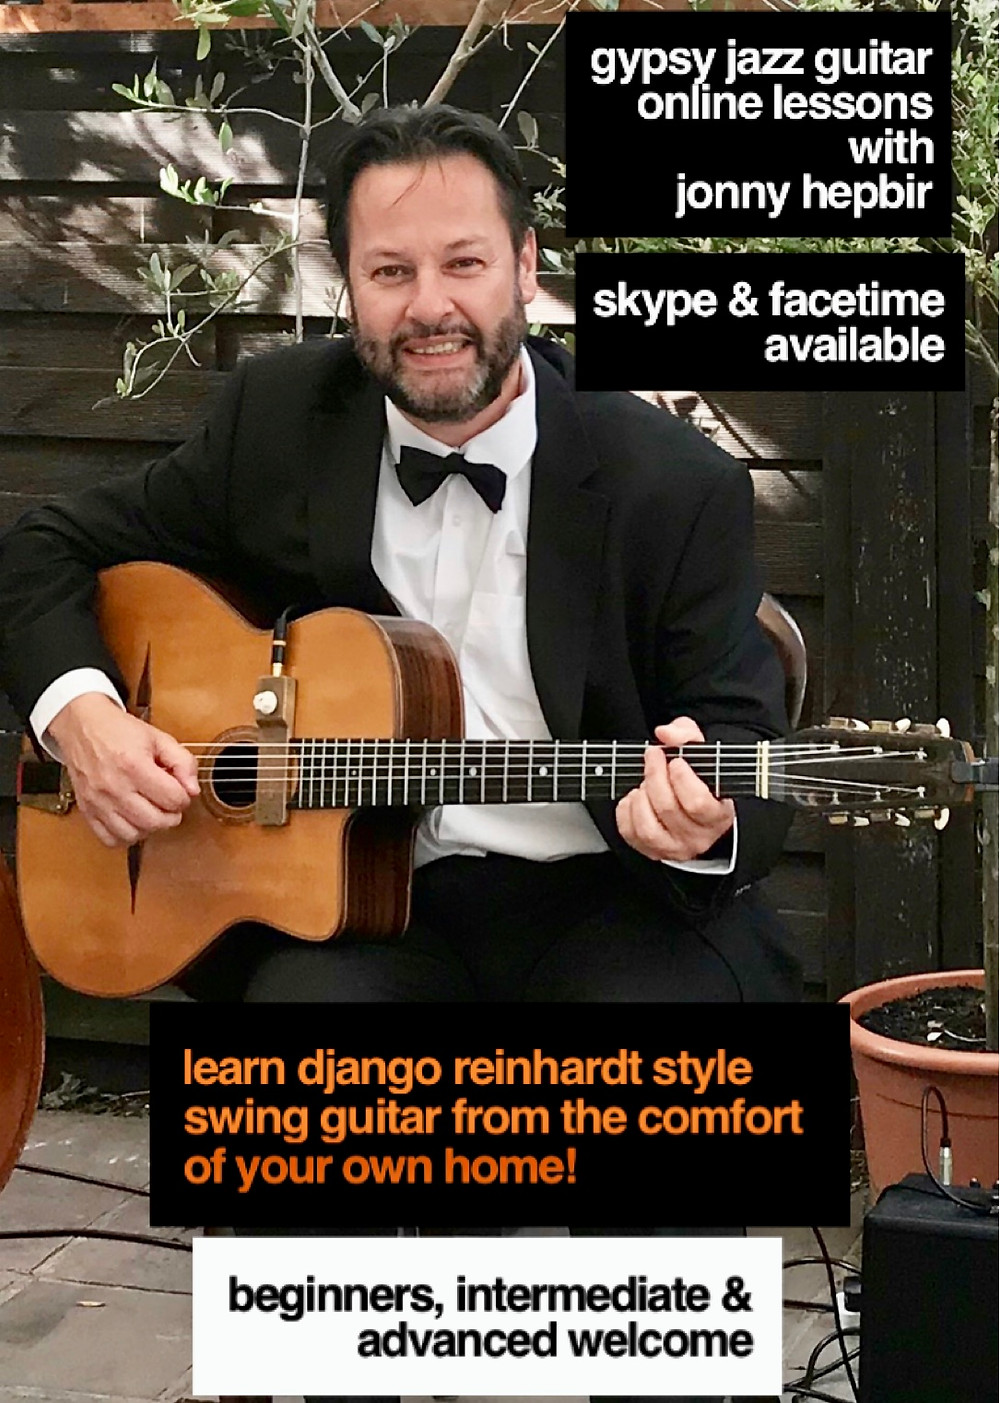 Gypsy Jazz Guitar Skype And Facetime Lessons With Jonny Hepbir